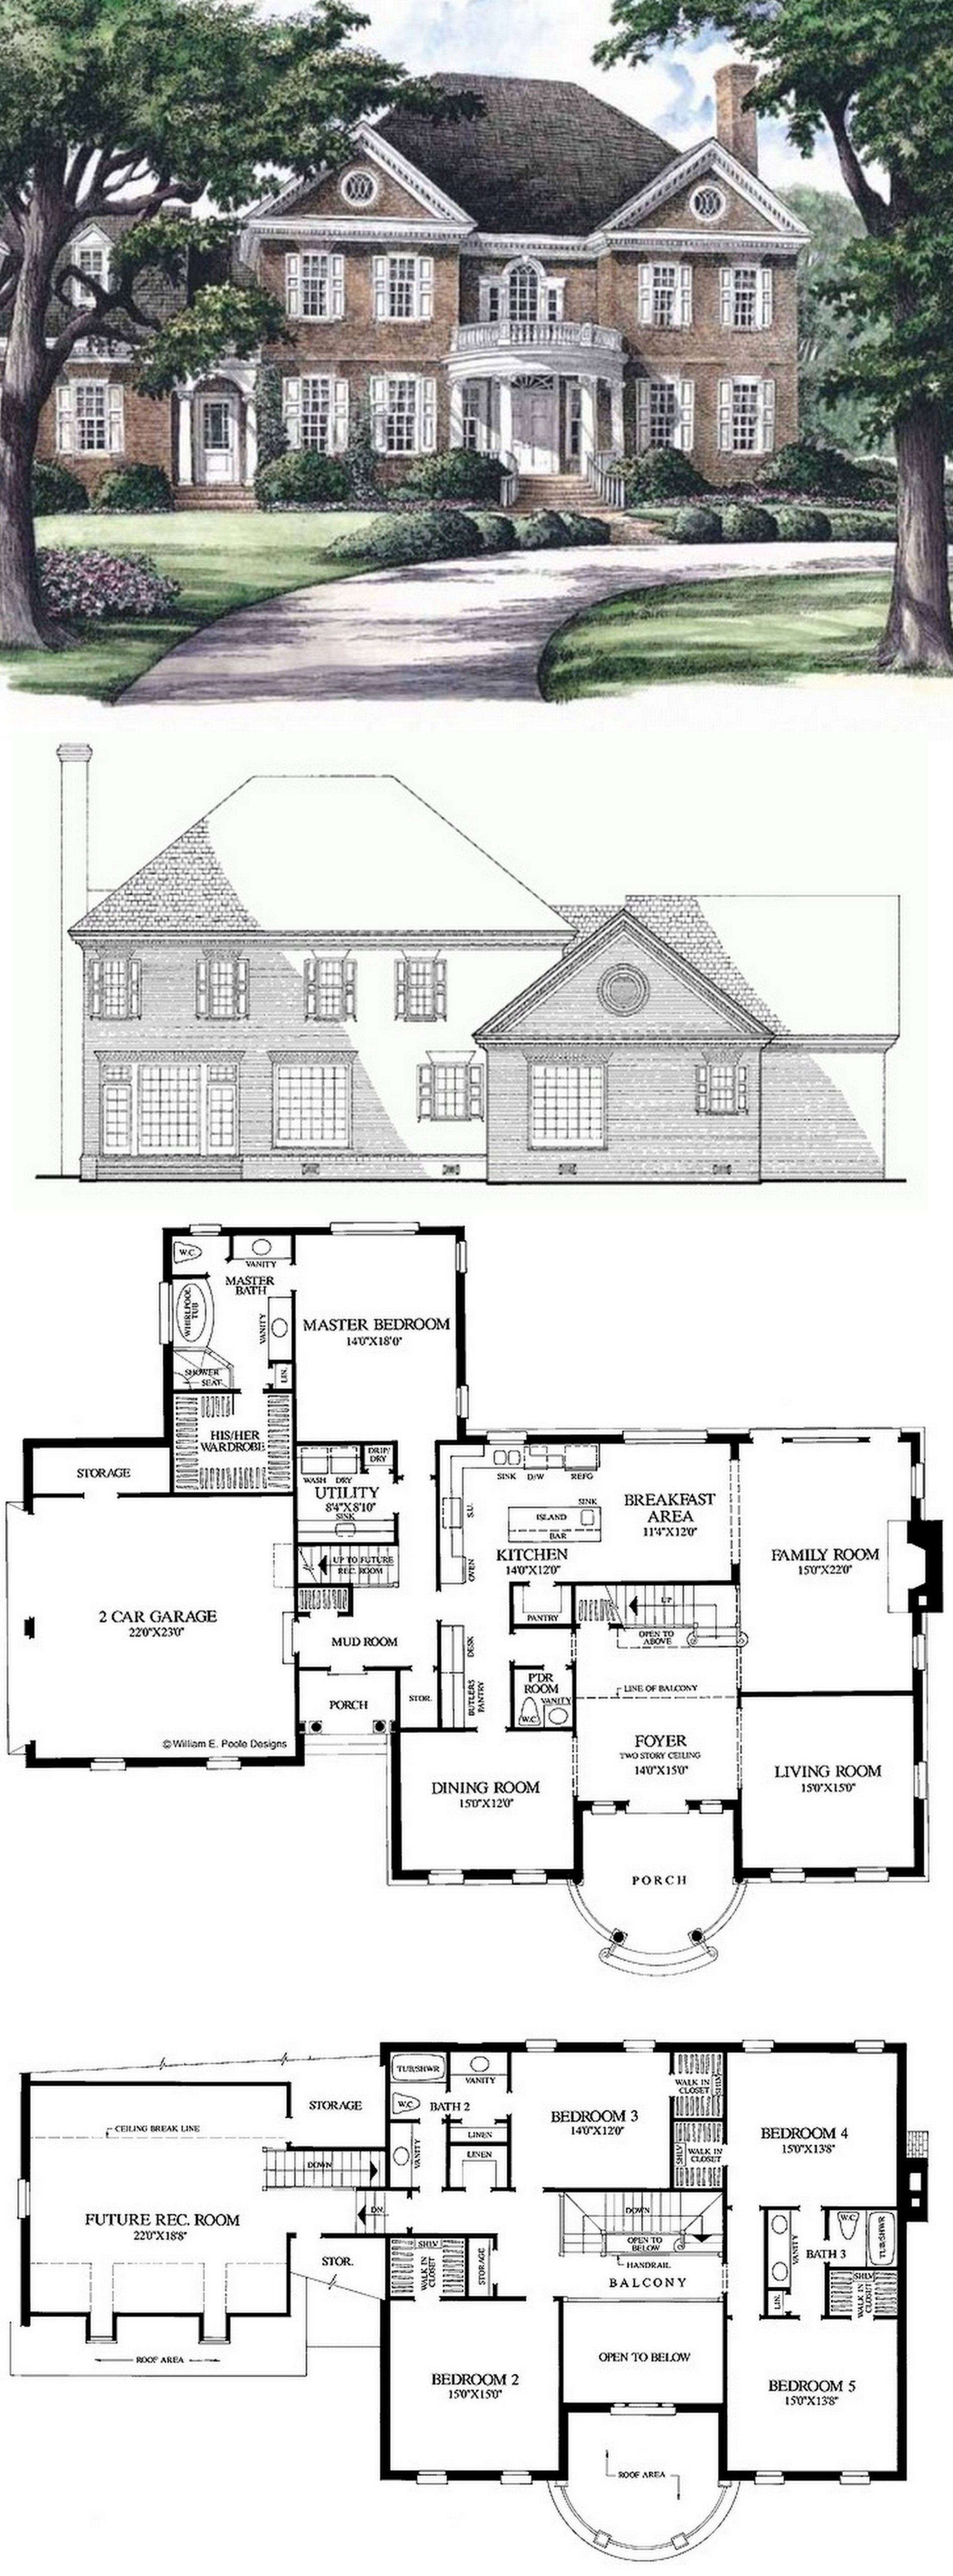 5 master bedroom house plans  Georgian House Plan with  Square Feet and  Bedrooms from Dream